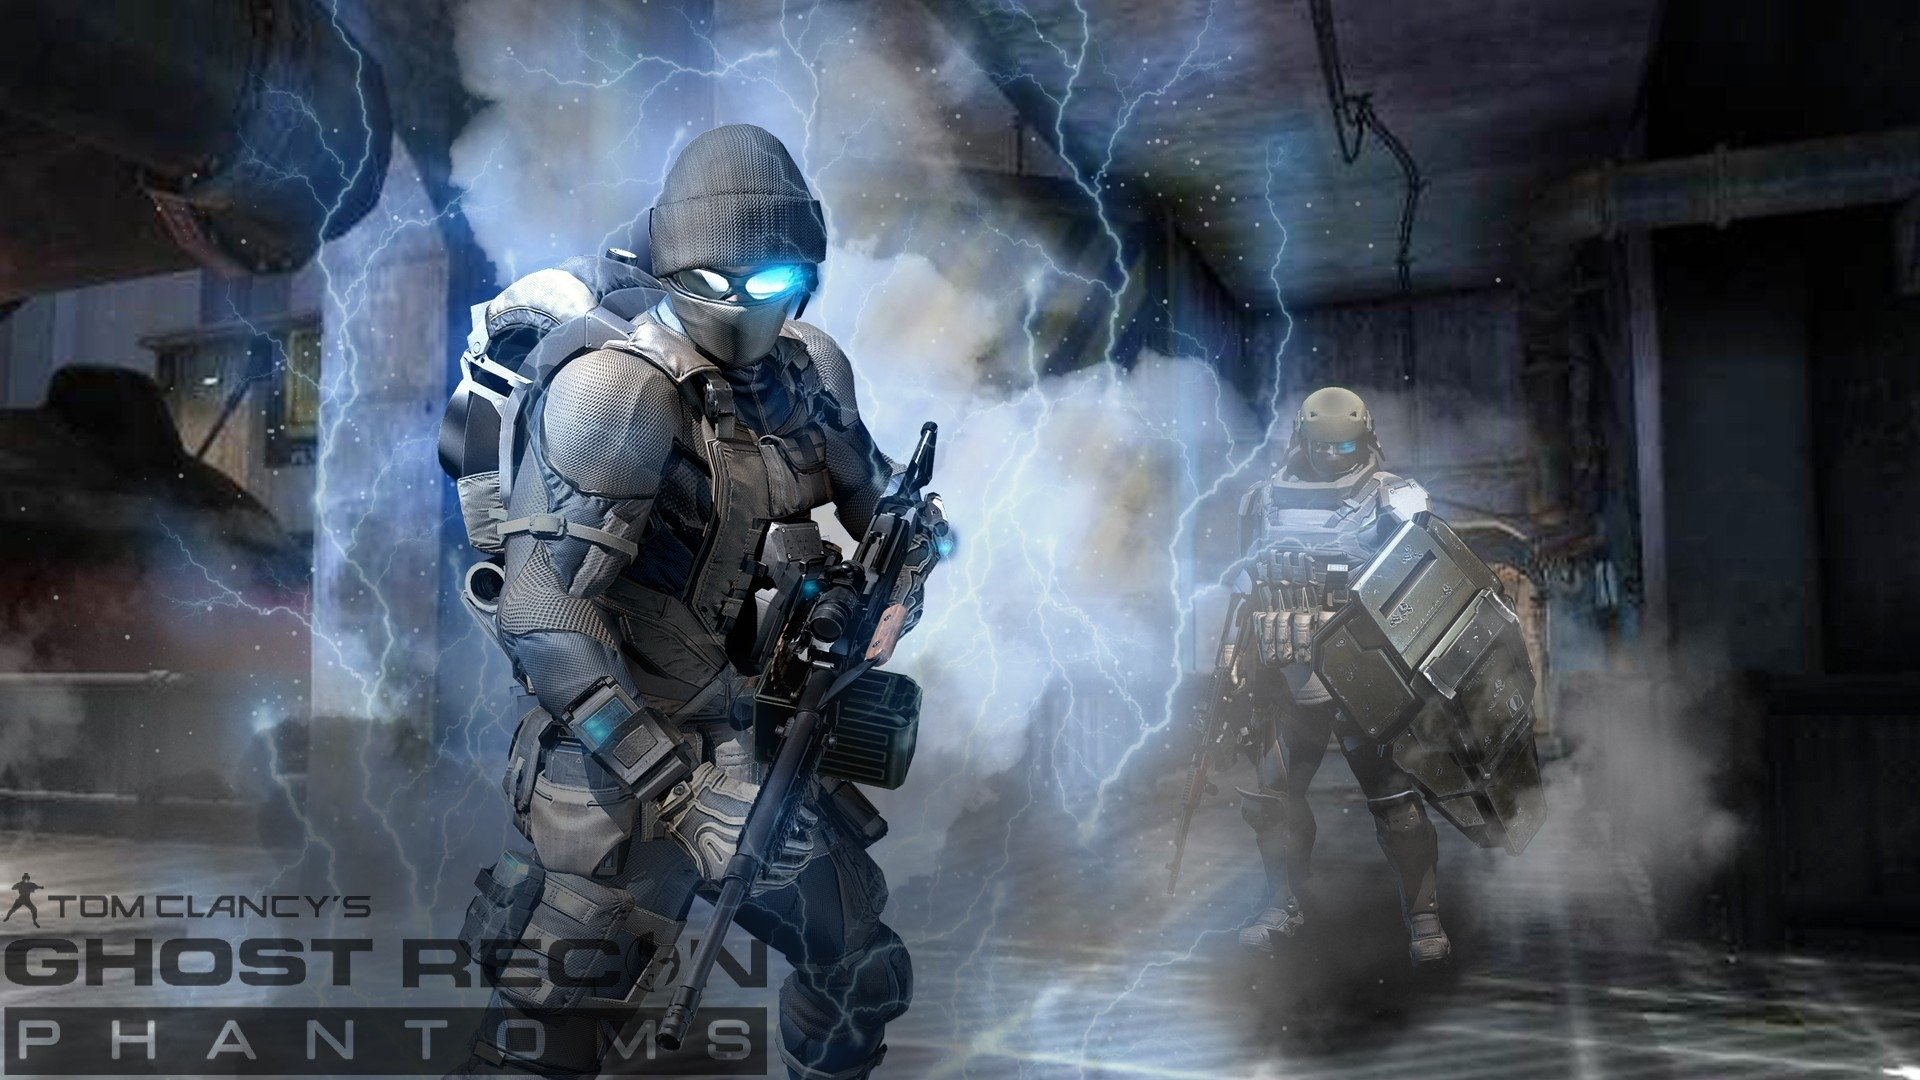 Tom Clancy S Ghost Recon Phantoms Hd Wallpaper Background Image